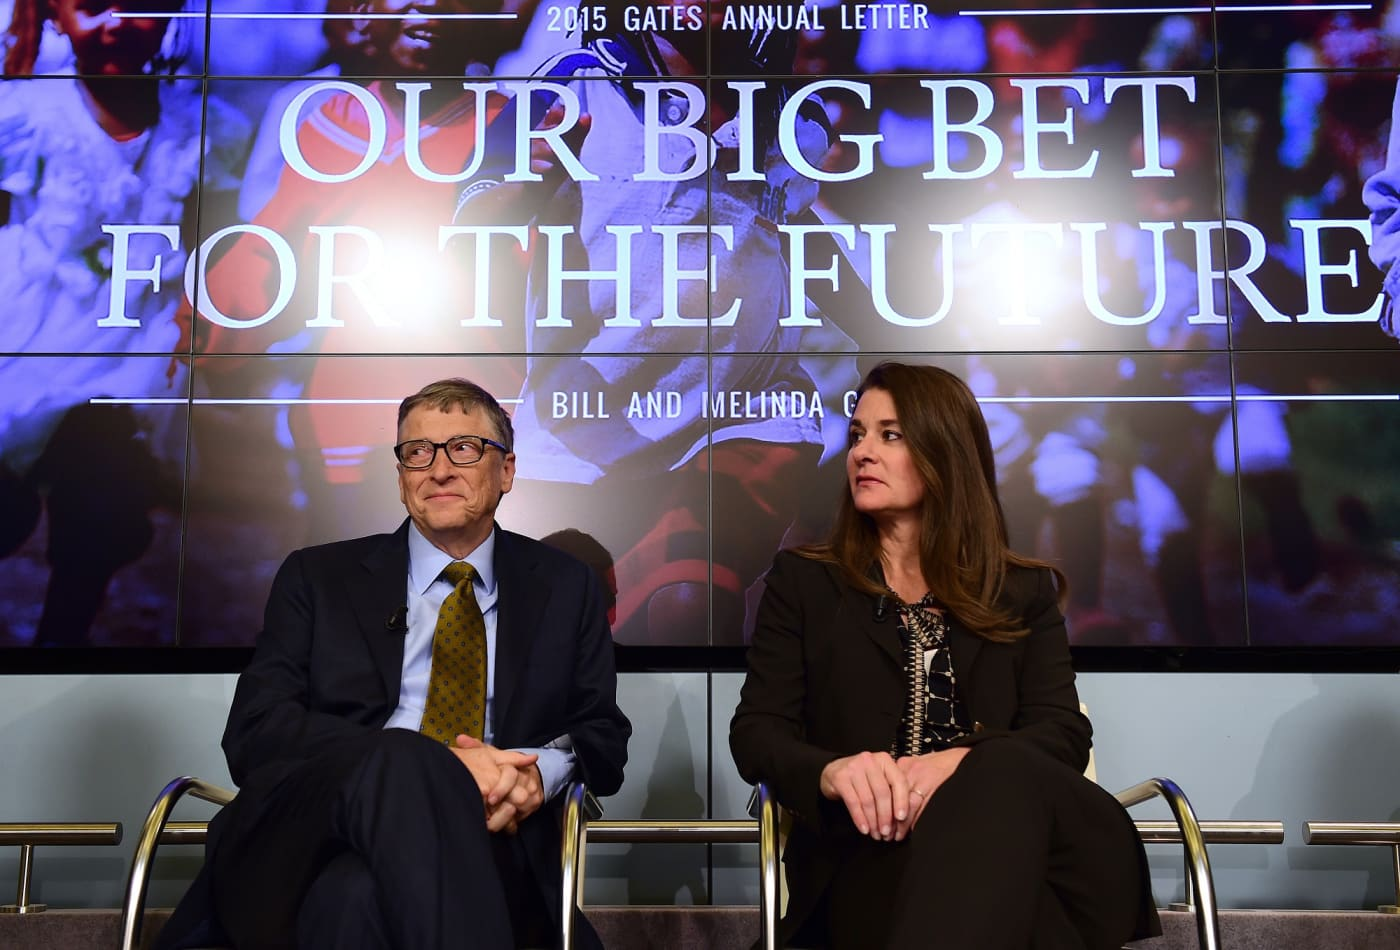 Bill and Melinda Gates have spent billions trying to fix U.S. public education but say it's not having the impact they want